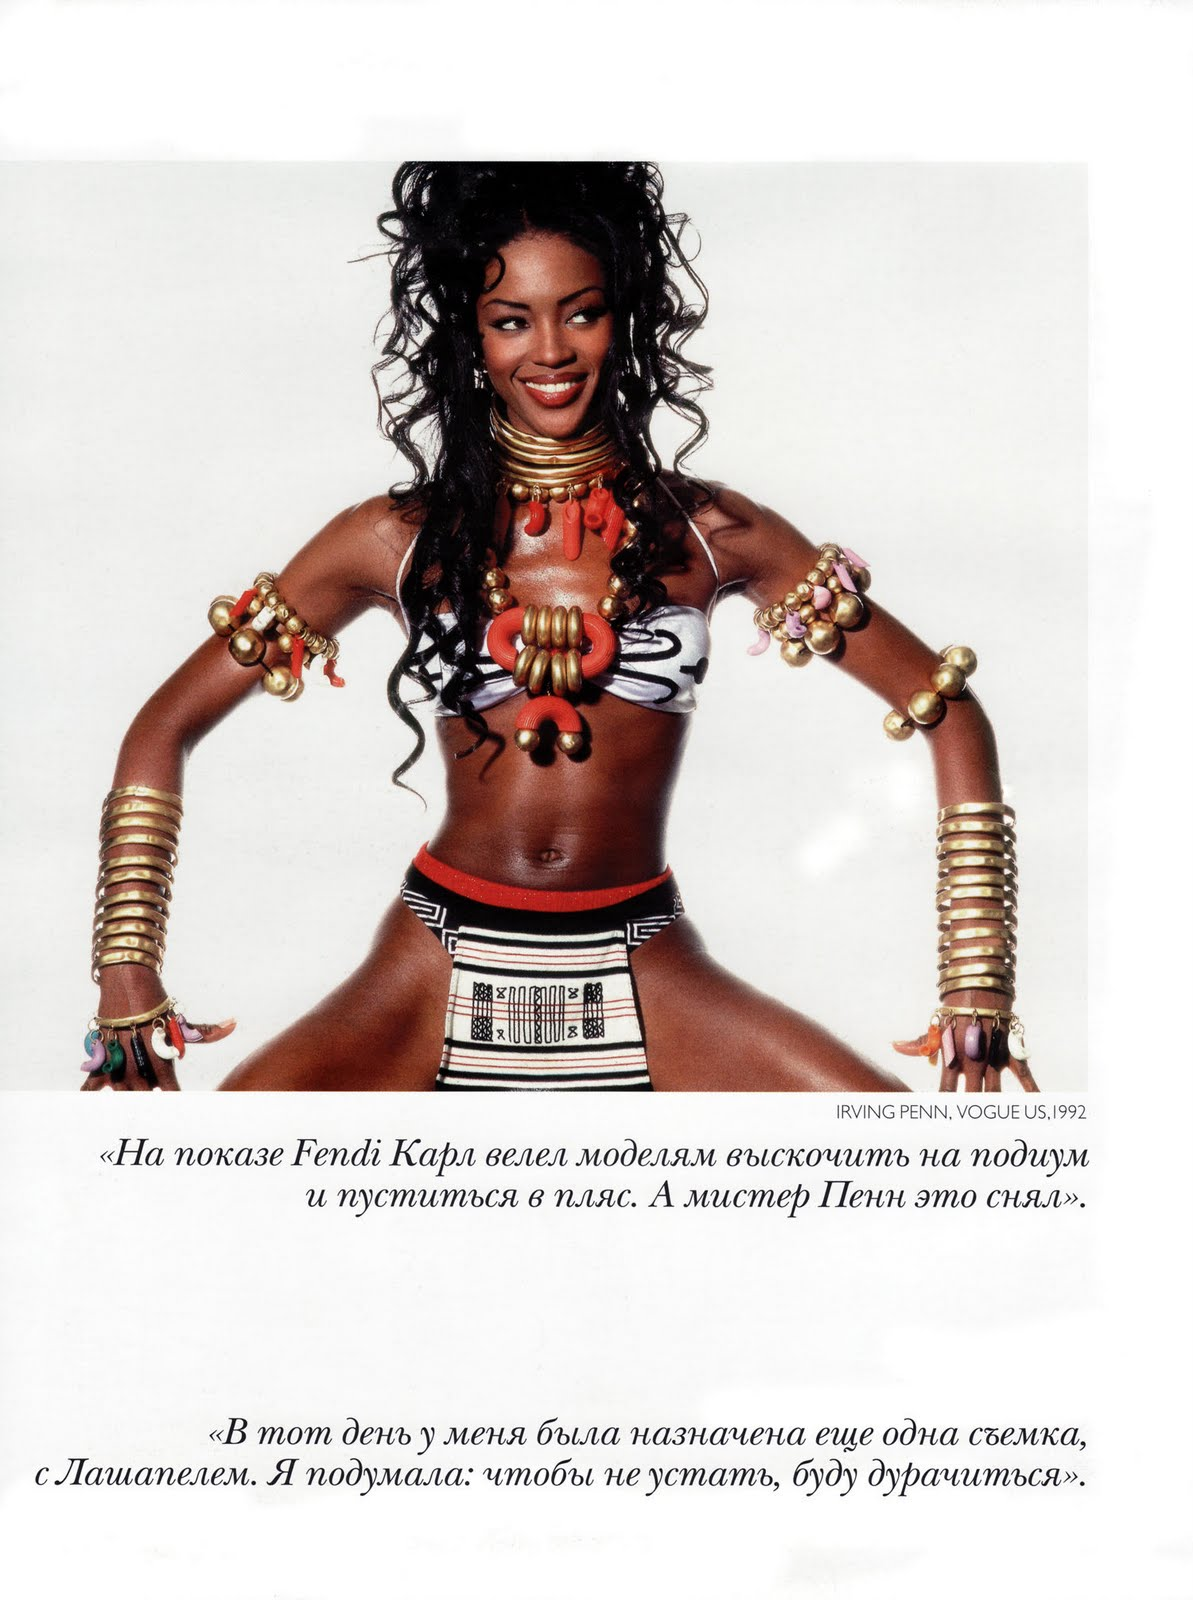 She Wore It Well: Naomi Campbell for Vogue Russia